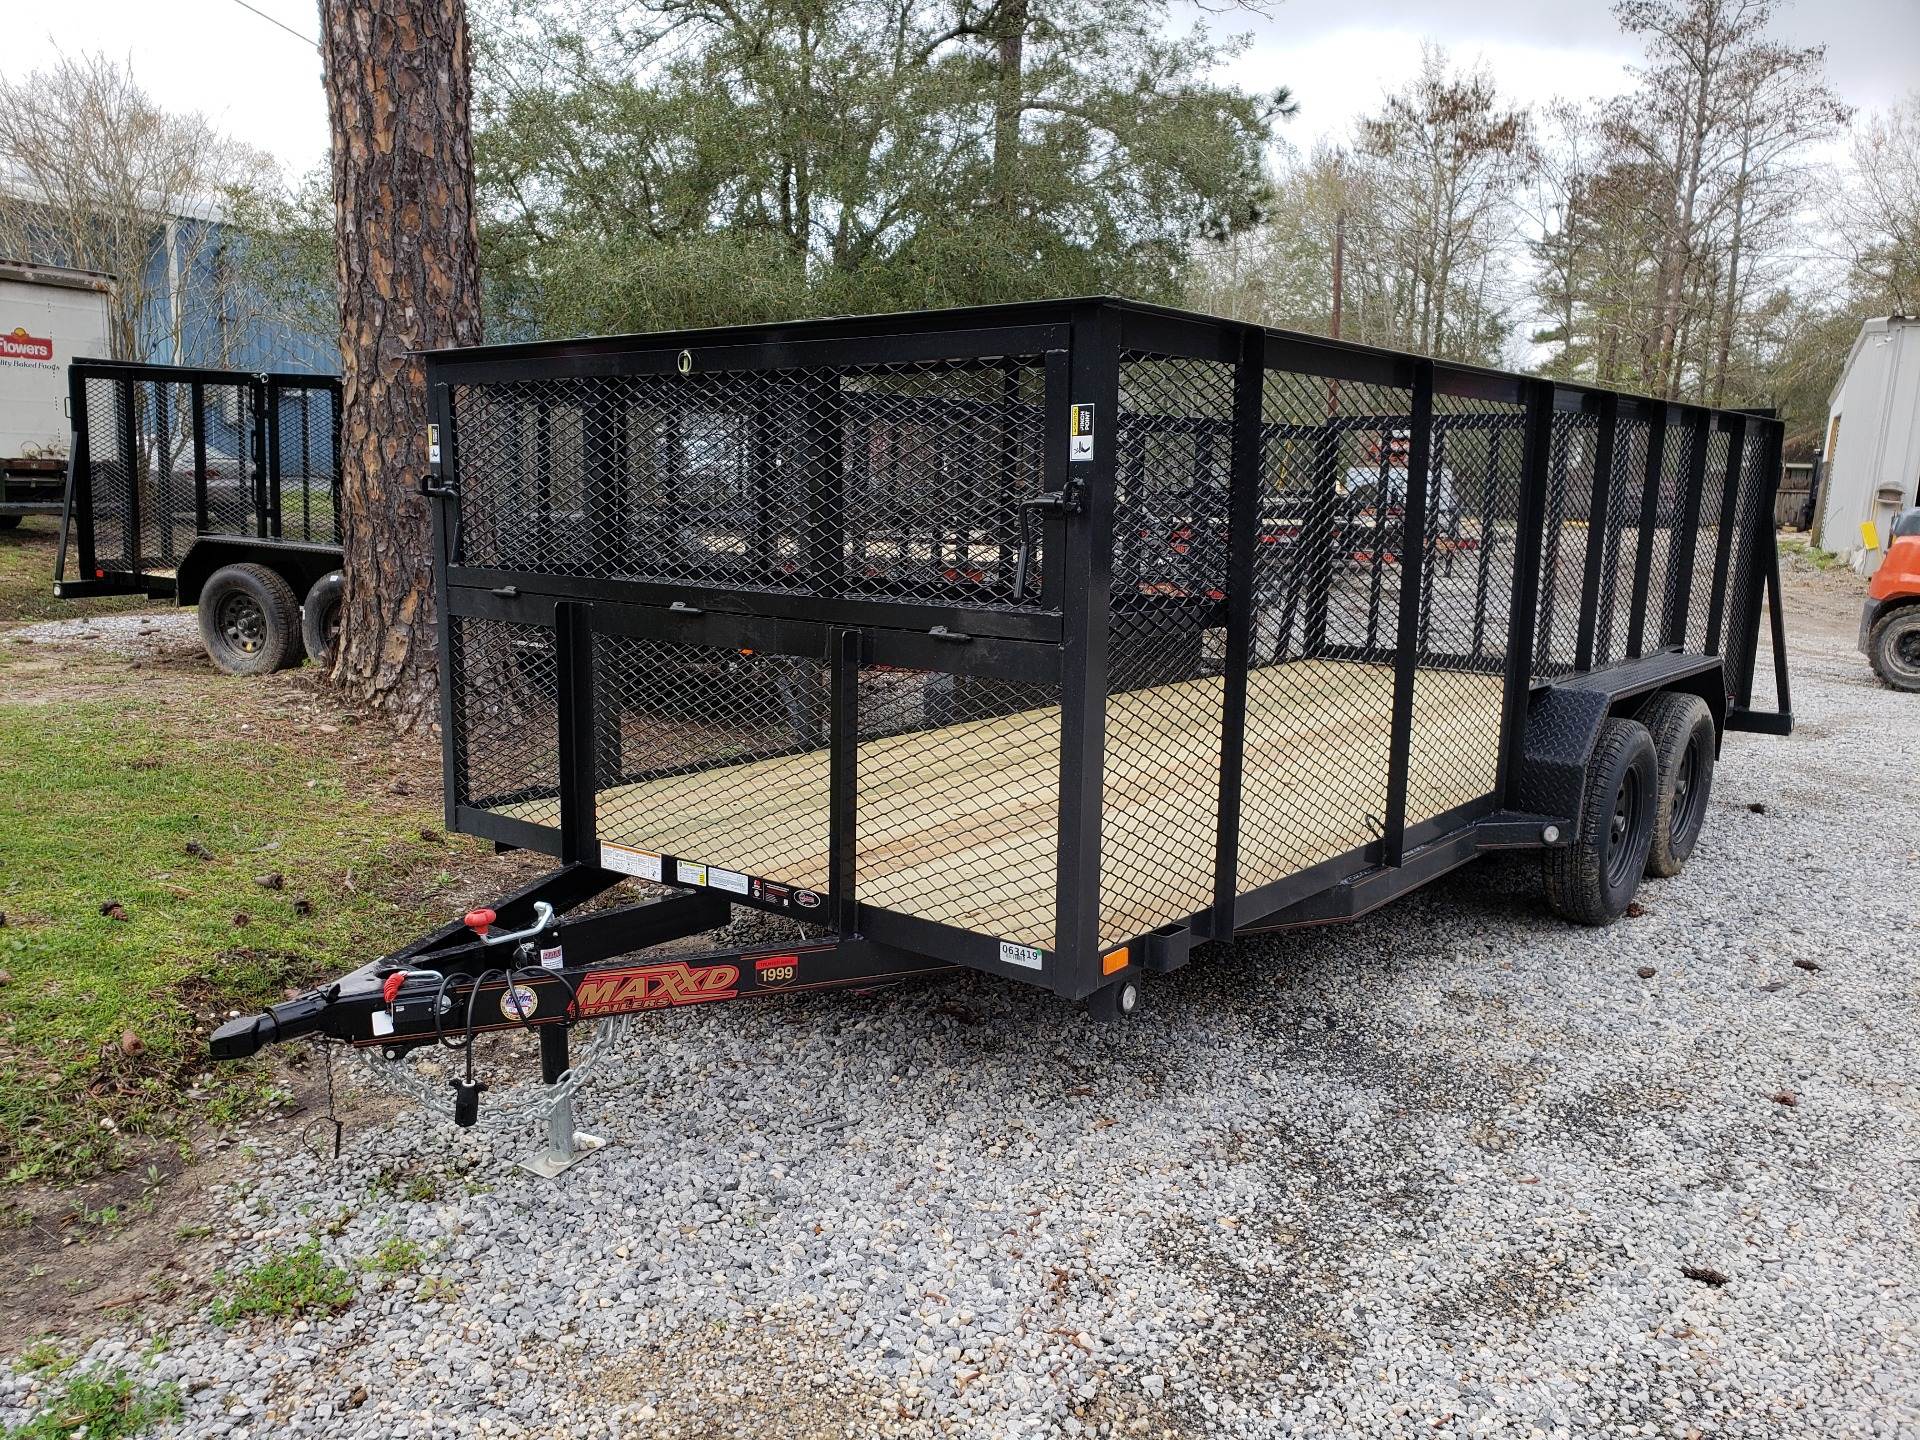 2019 MaxxD Trailers 18X83 in Pearl River, Louisiana - Photo 1